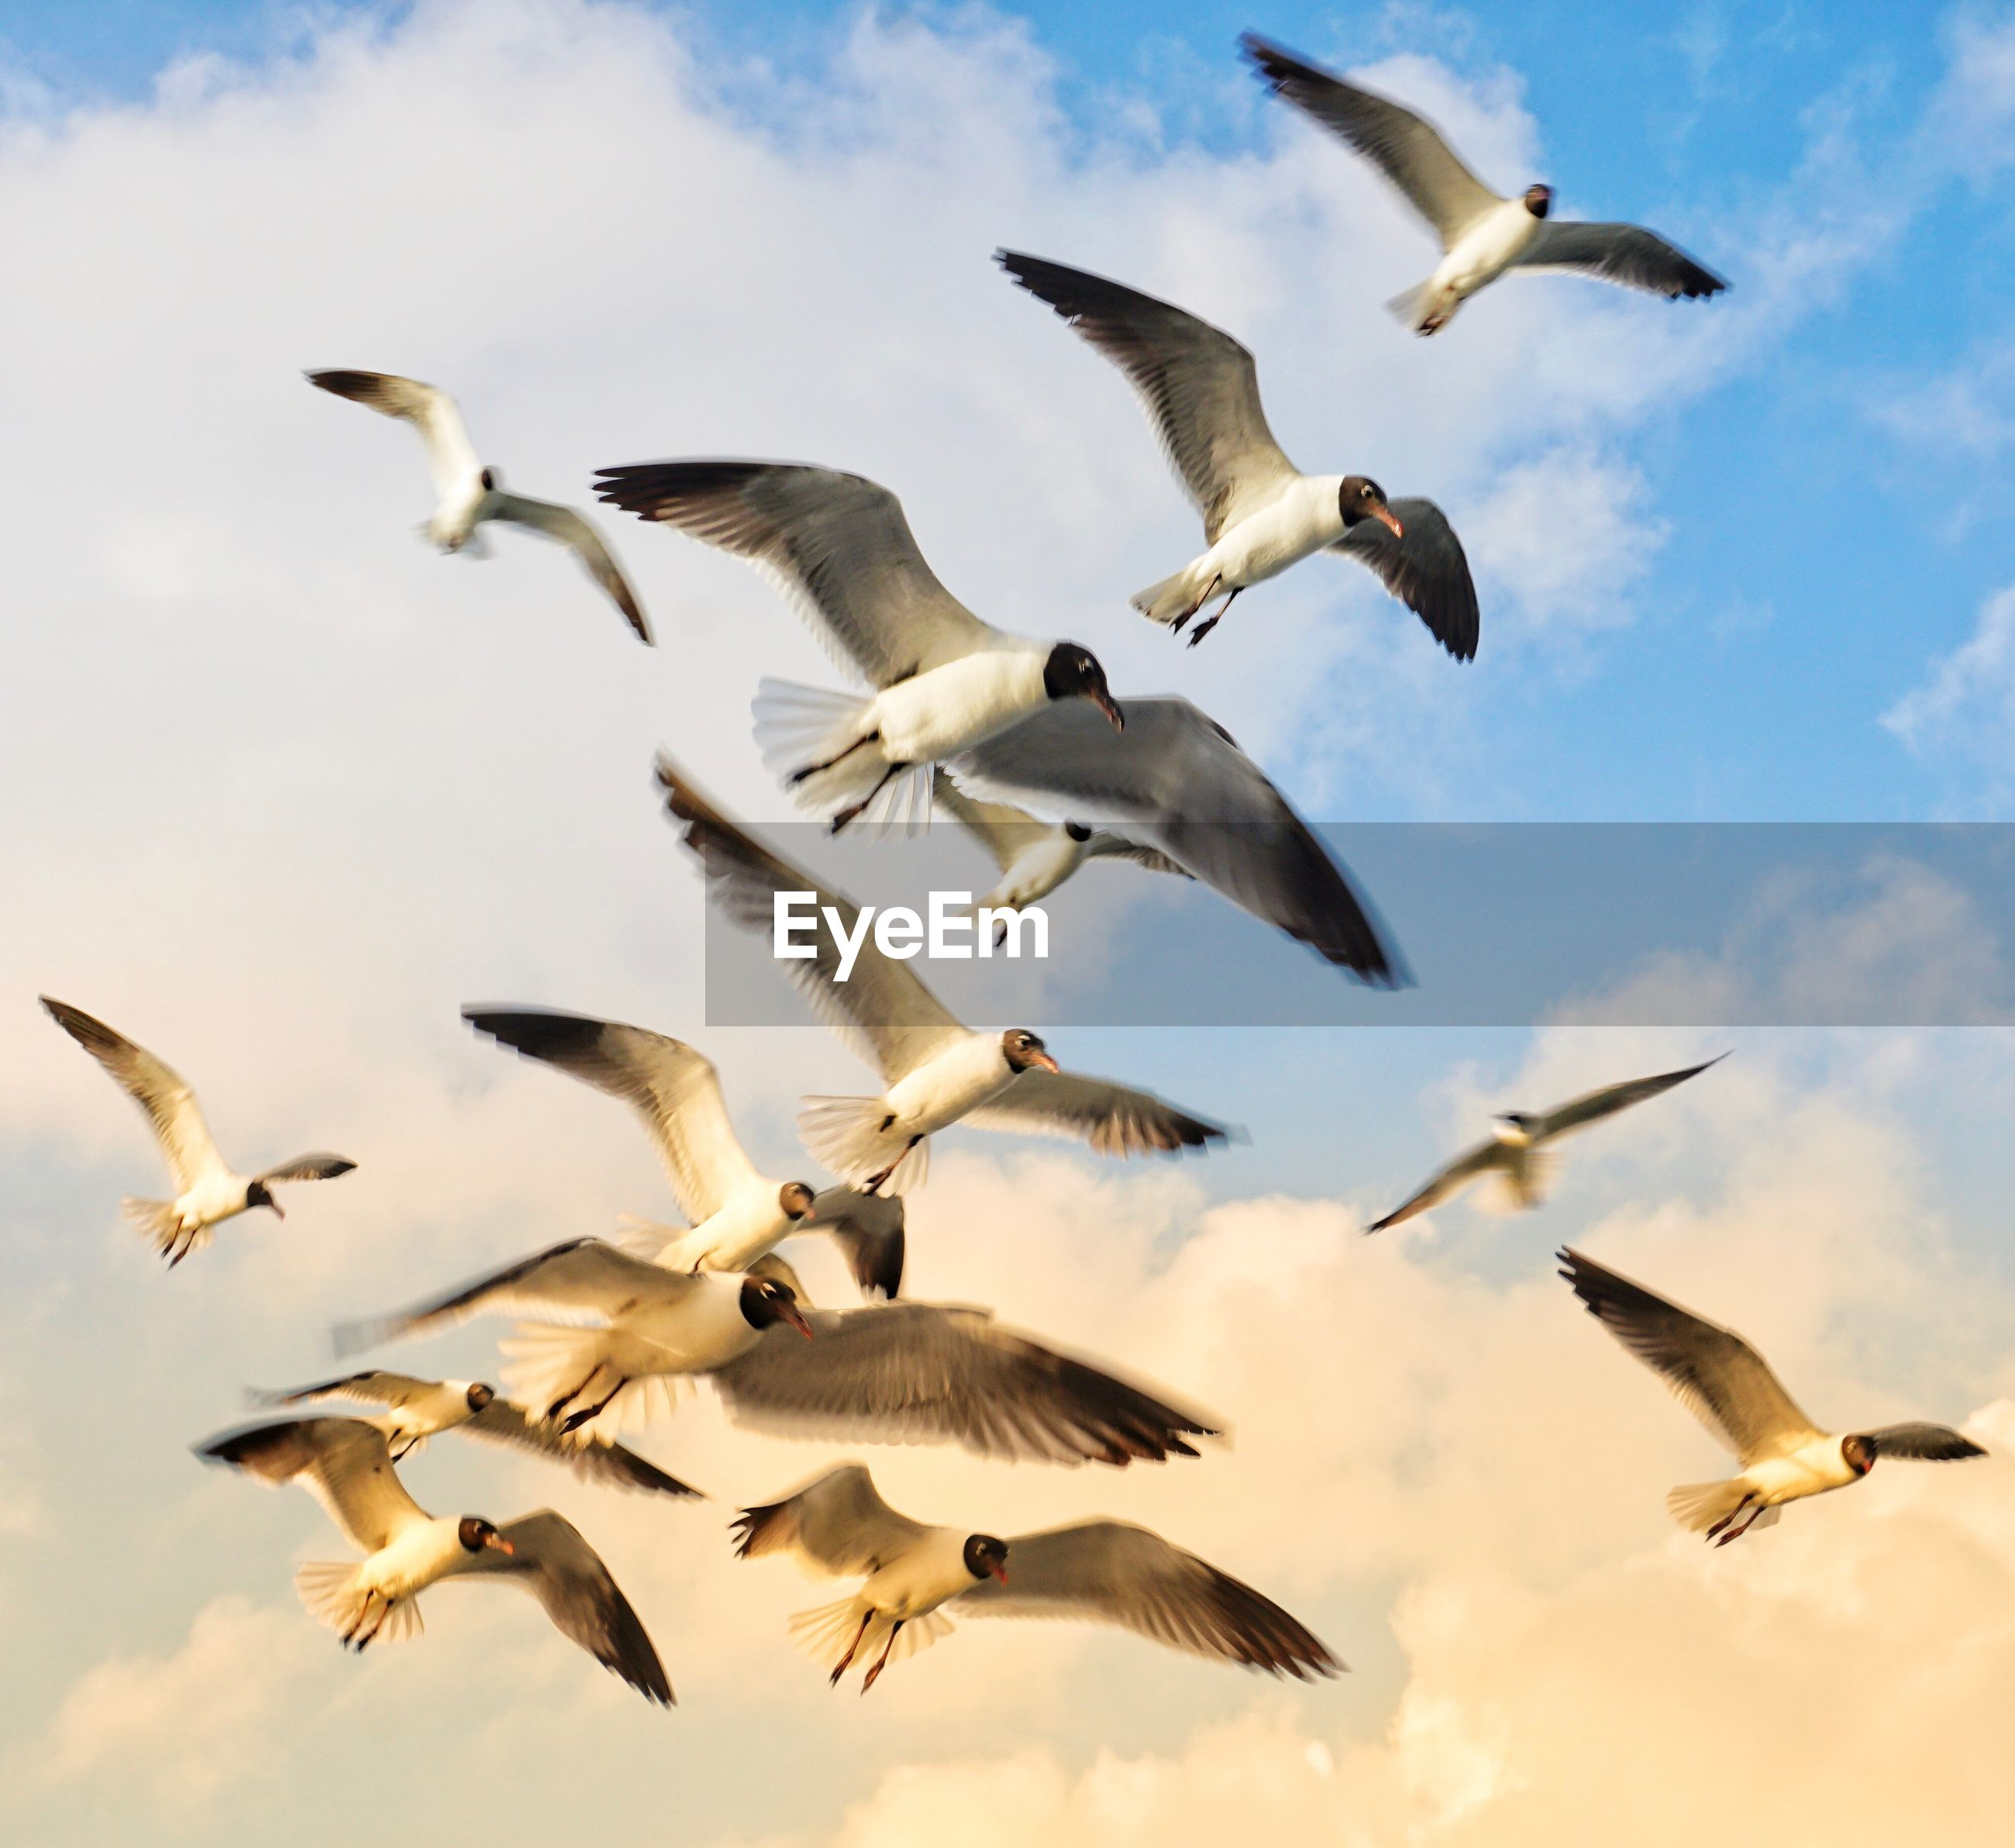 LOW ANGLE VIEW OF SEAGULLS FLYING IN THE SKY